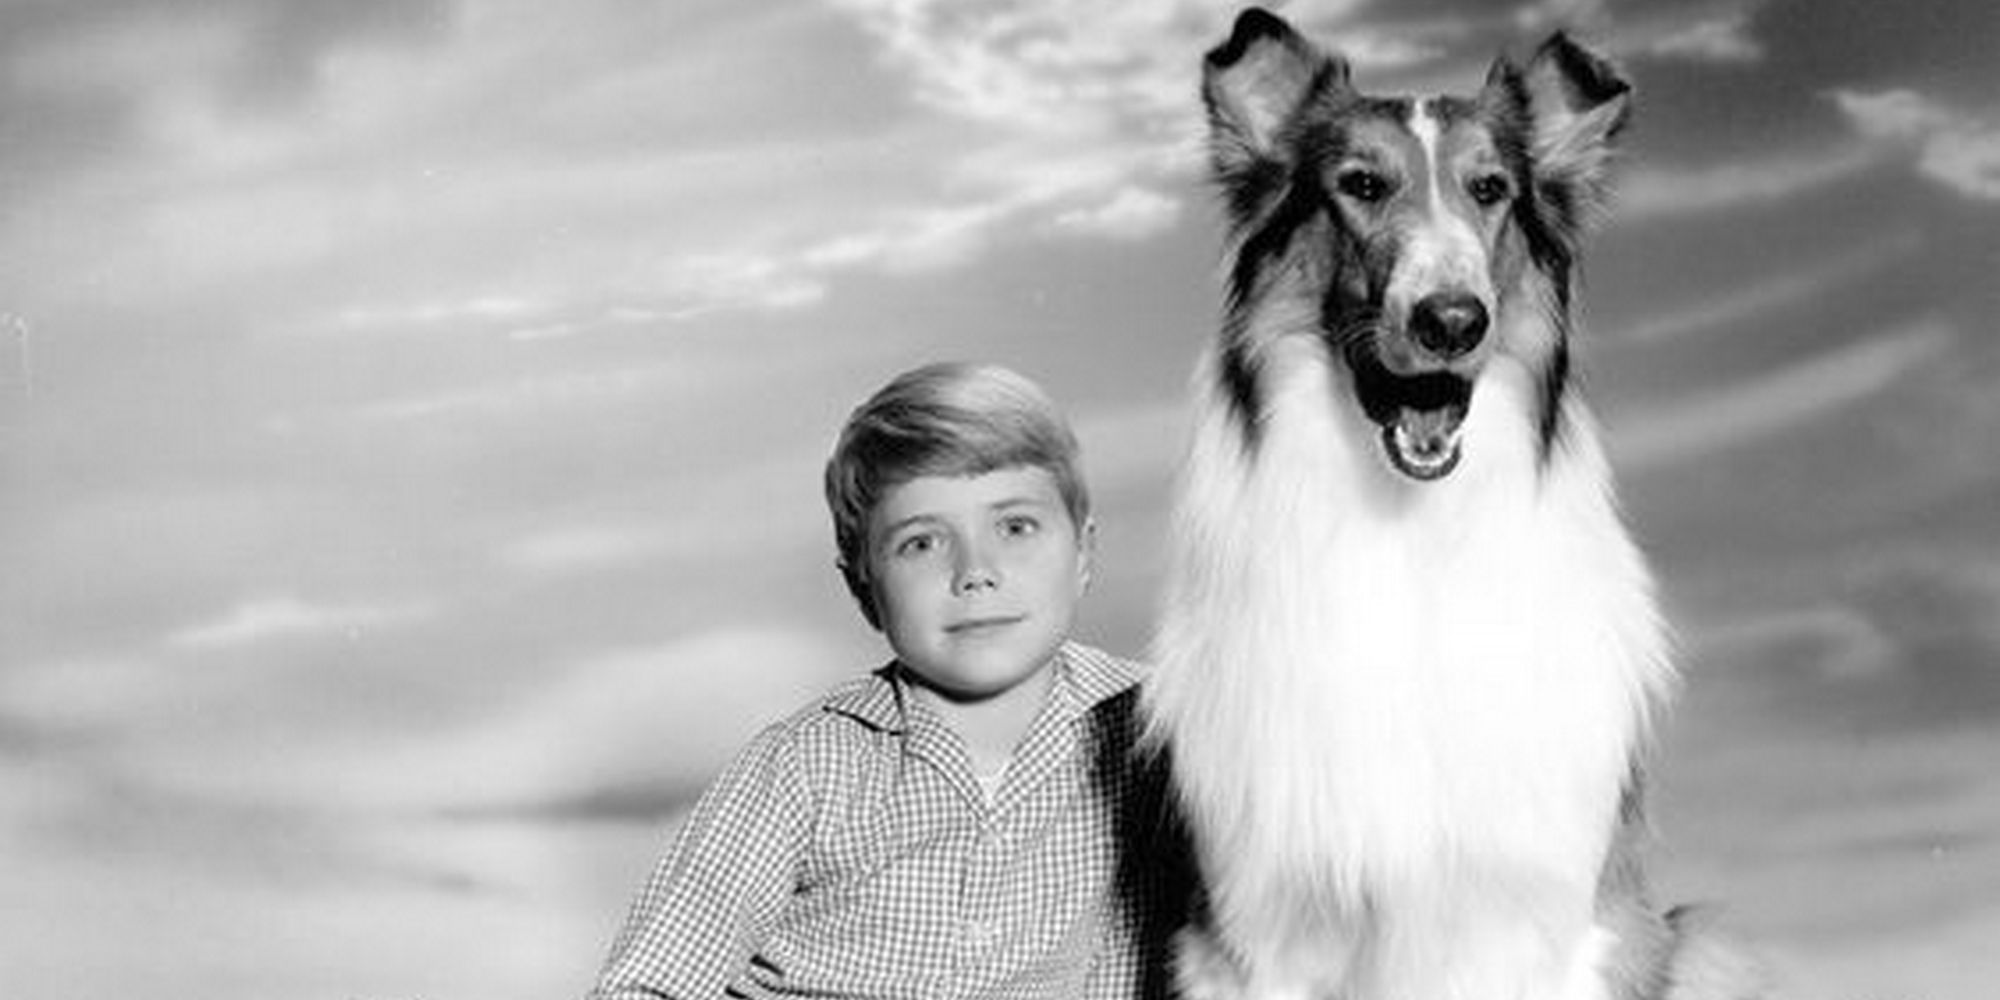 /images/upload/blog/1584/1584_Lassie.jpg